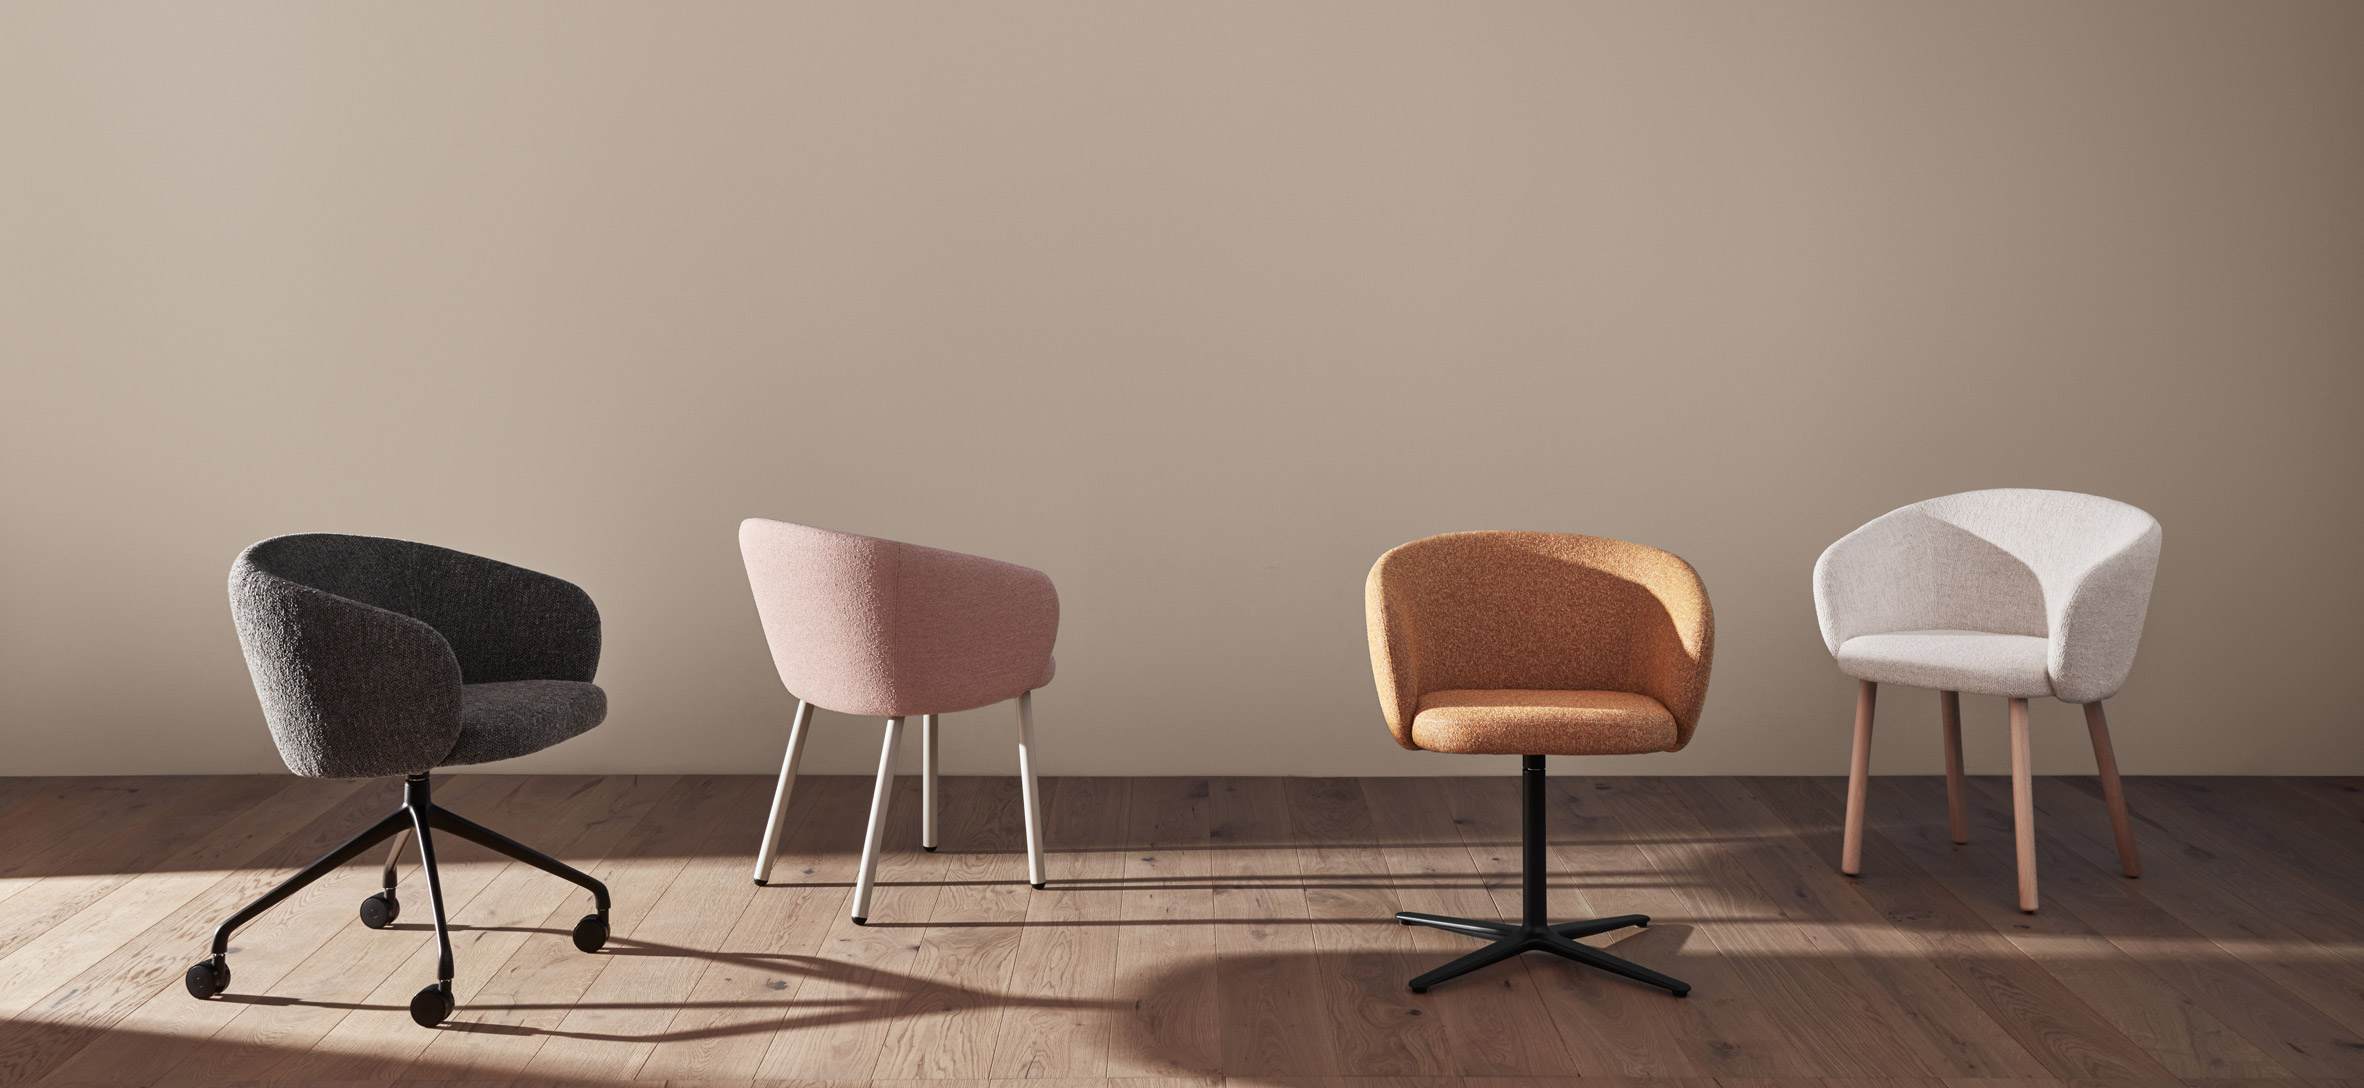 Padded armchairs by Mario Ruiz for Expormim with a swivel, caster and four-legged base